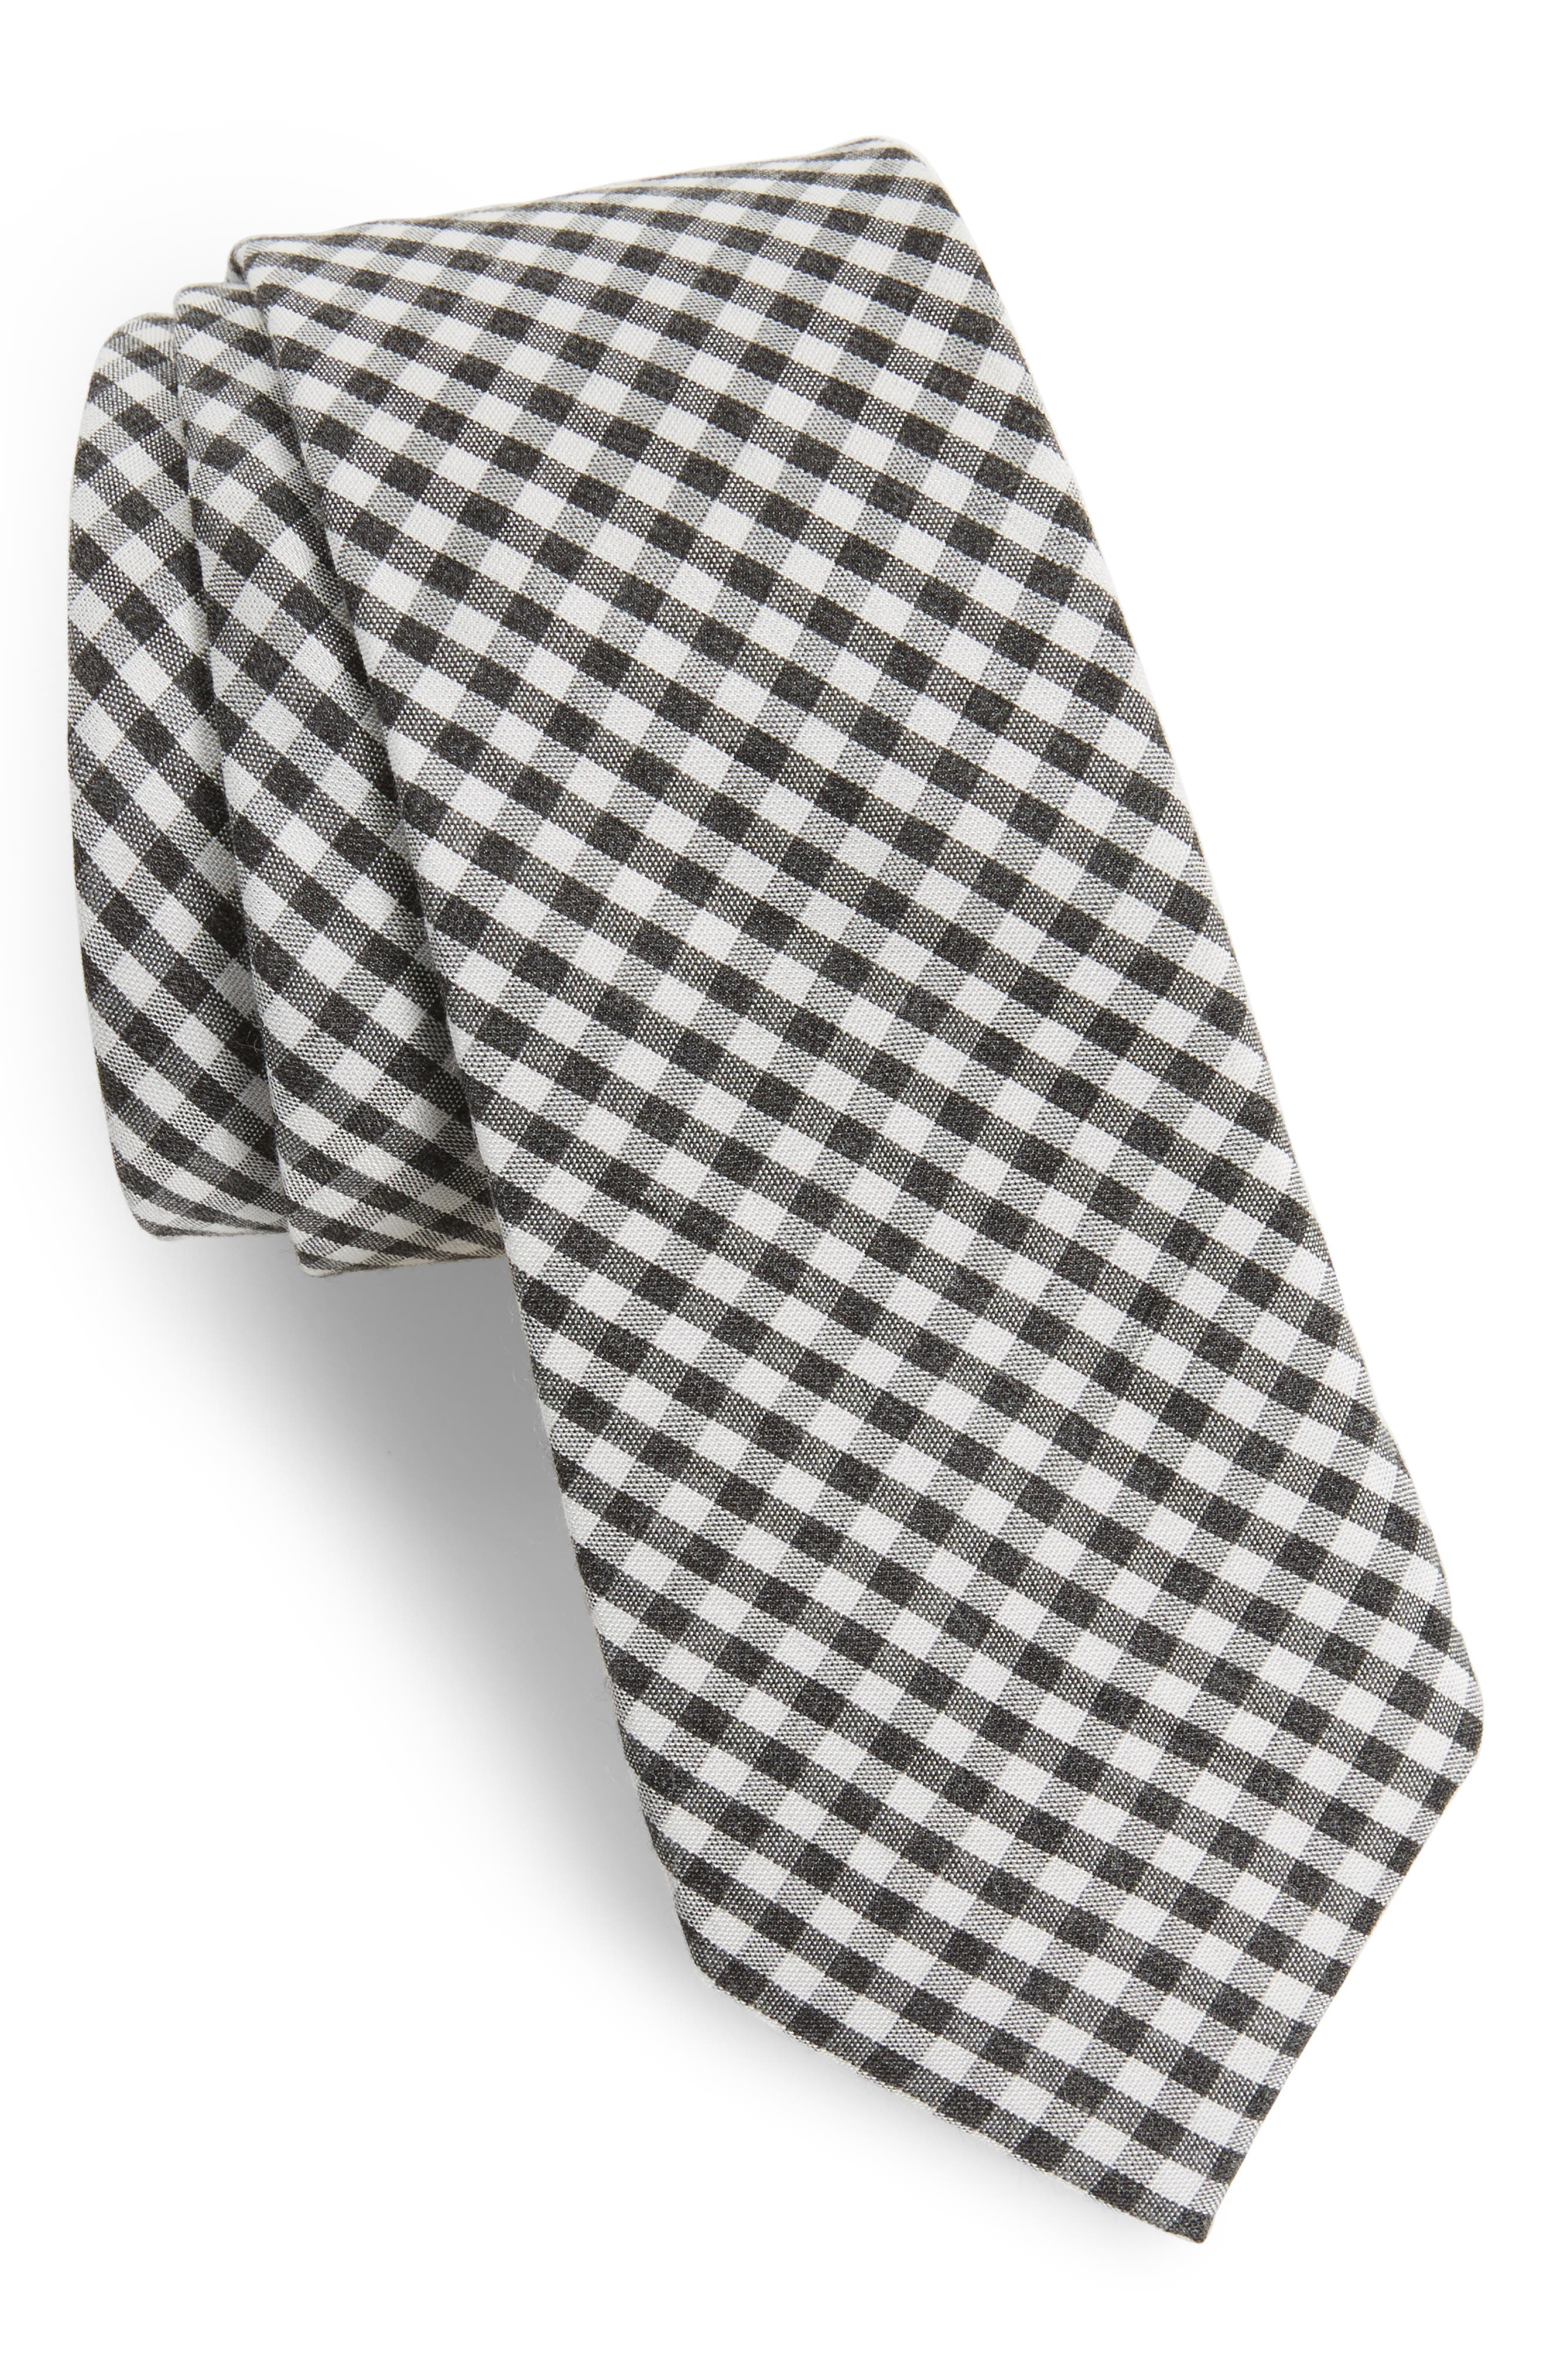 Alternate Image 1 Selected - 1901 Cahill Check Skinny Tie